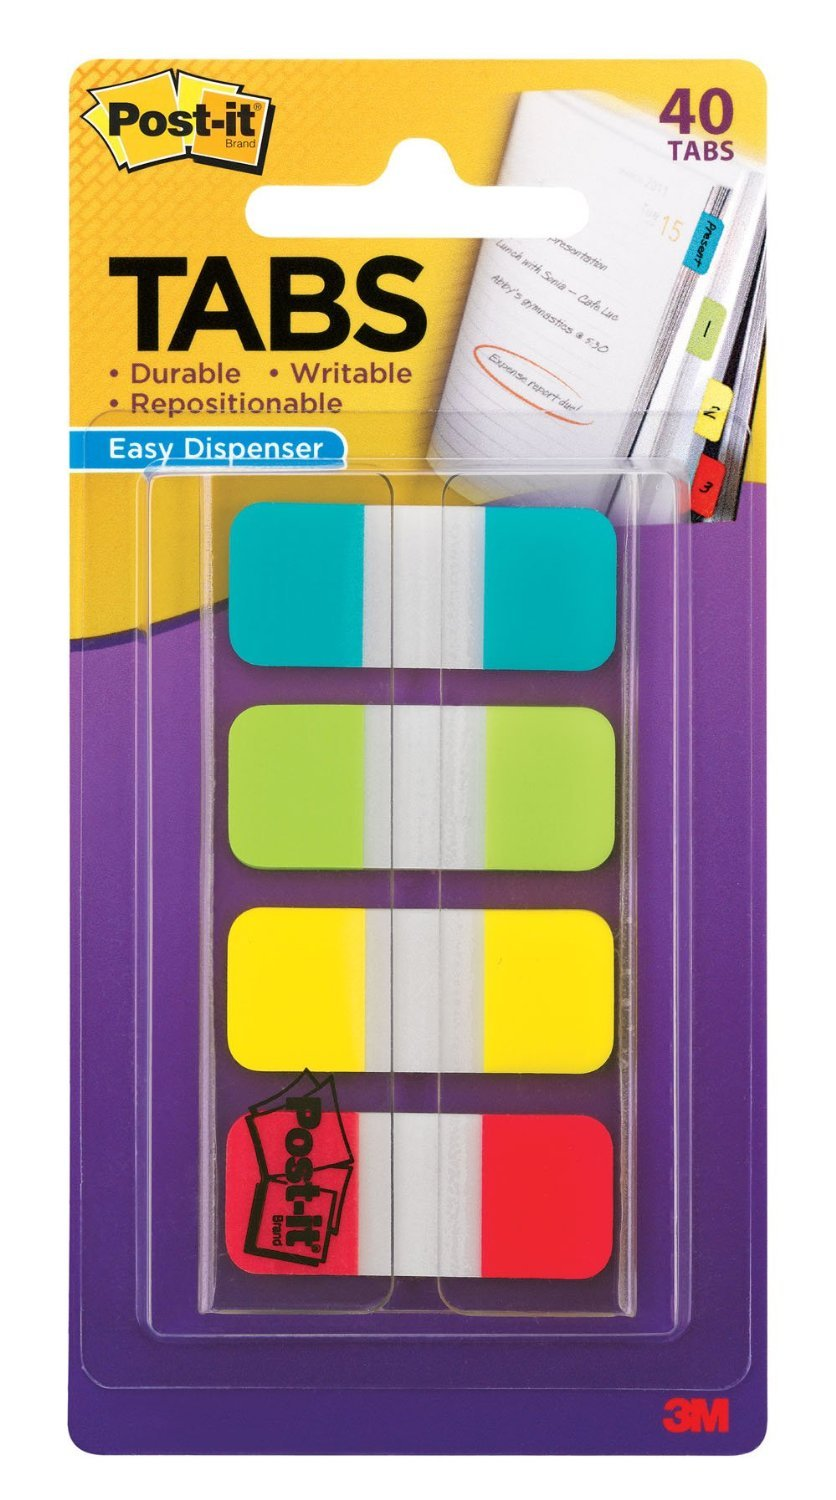 Post-it Tabs, .625 x 1.5 Inches, 4 Colors, 10/Color, 40/Dispenser, 6-PACK